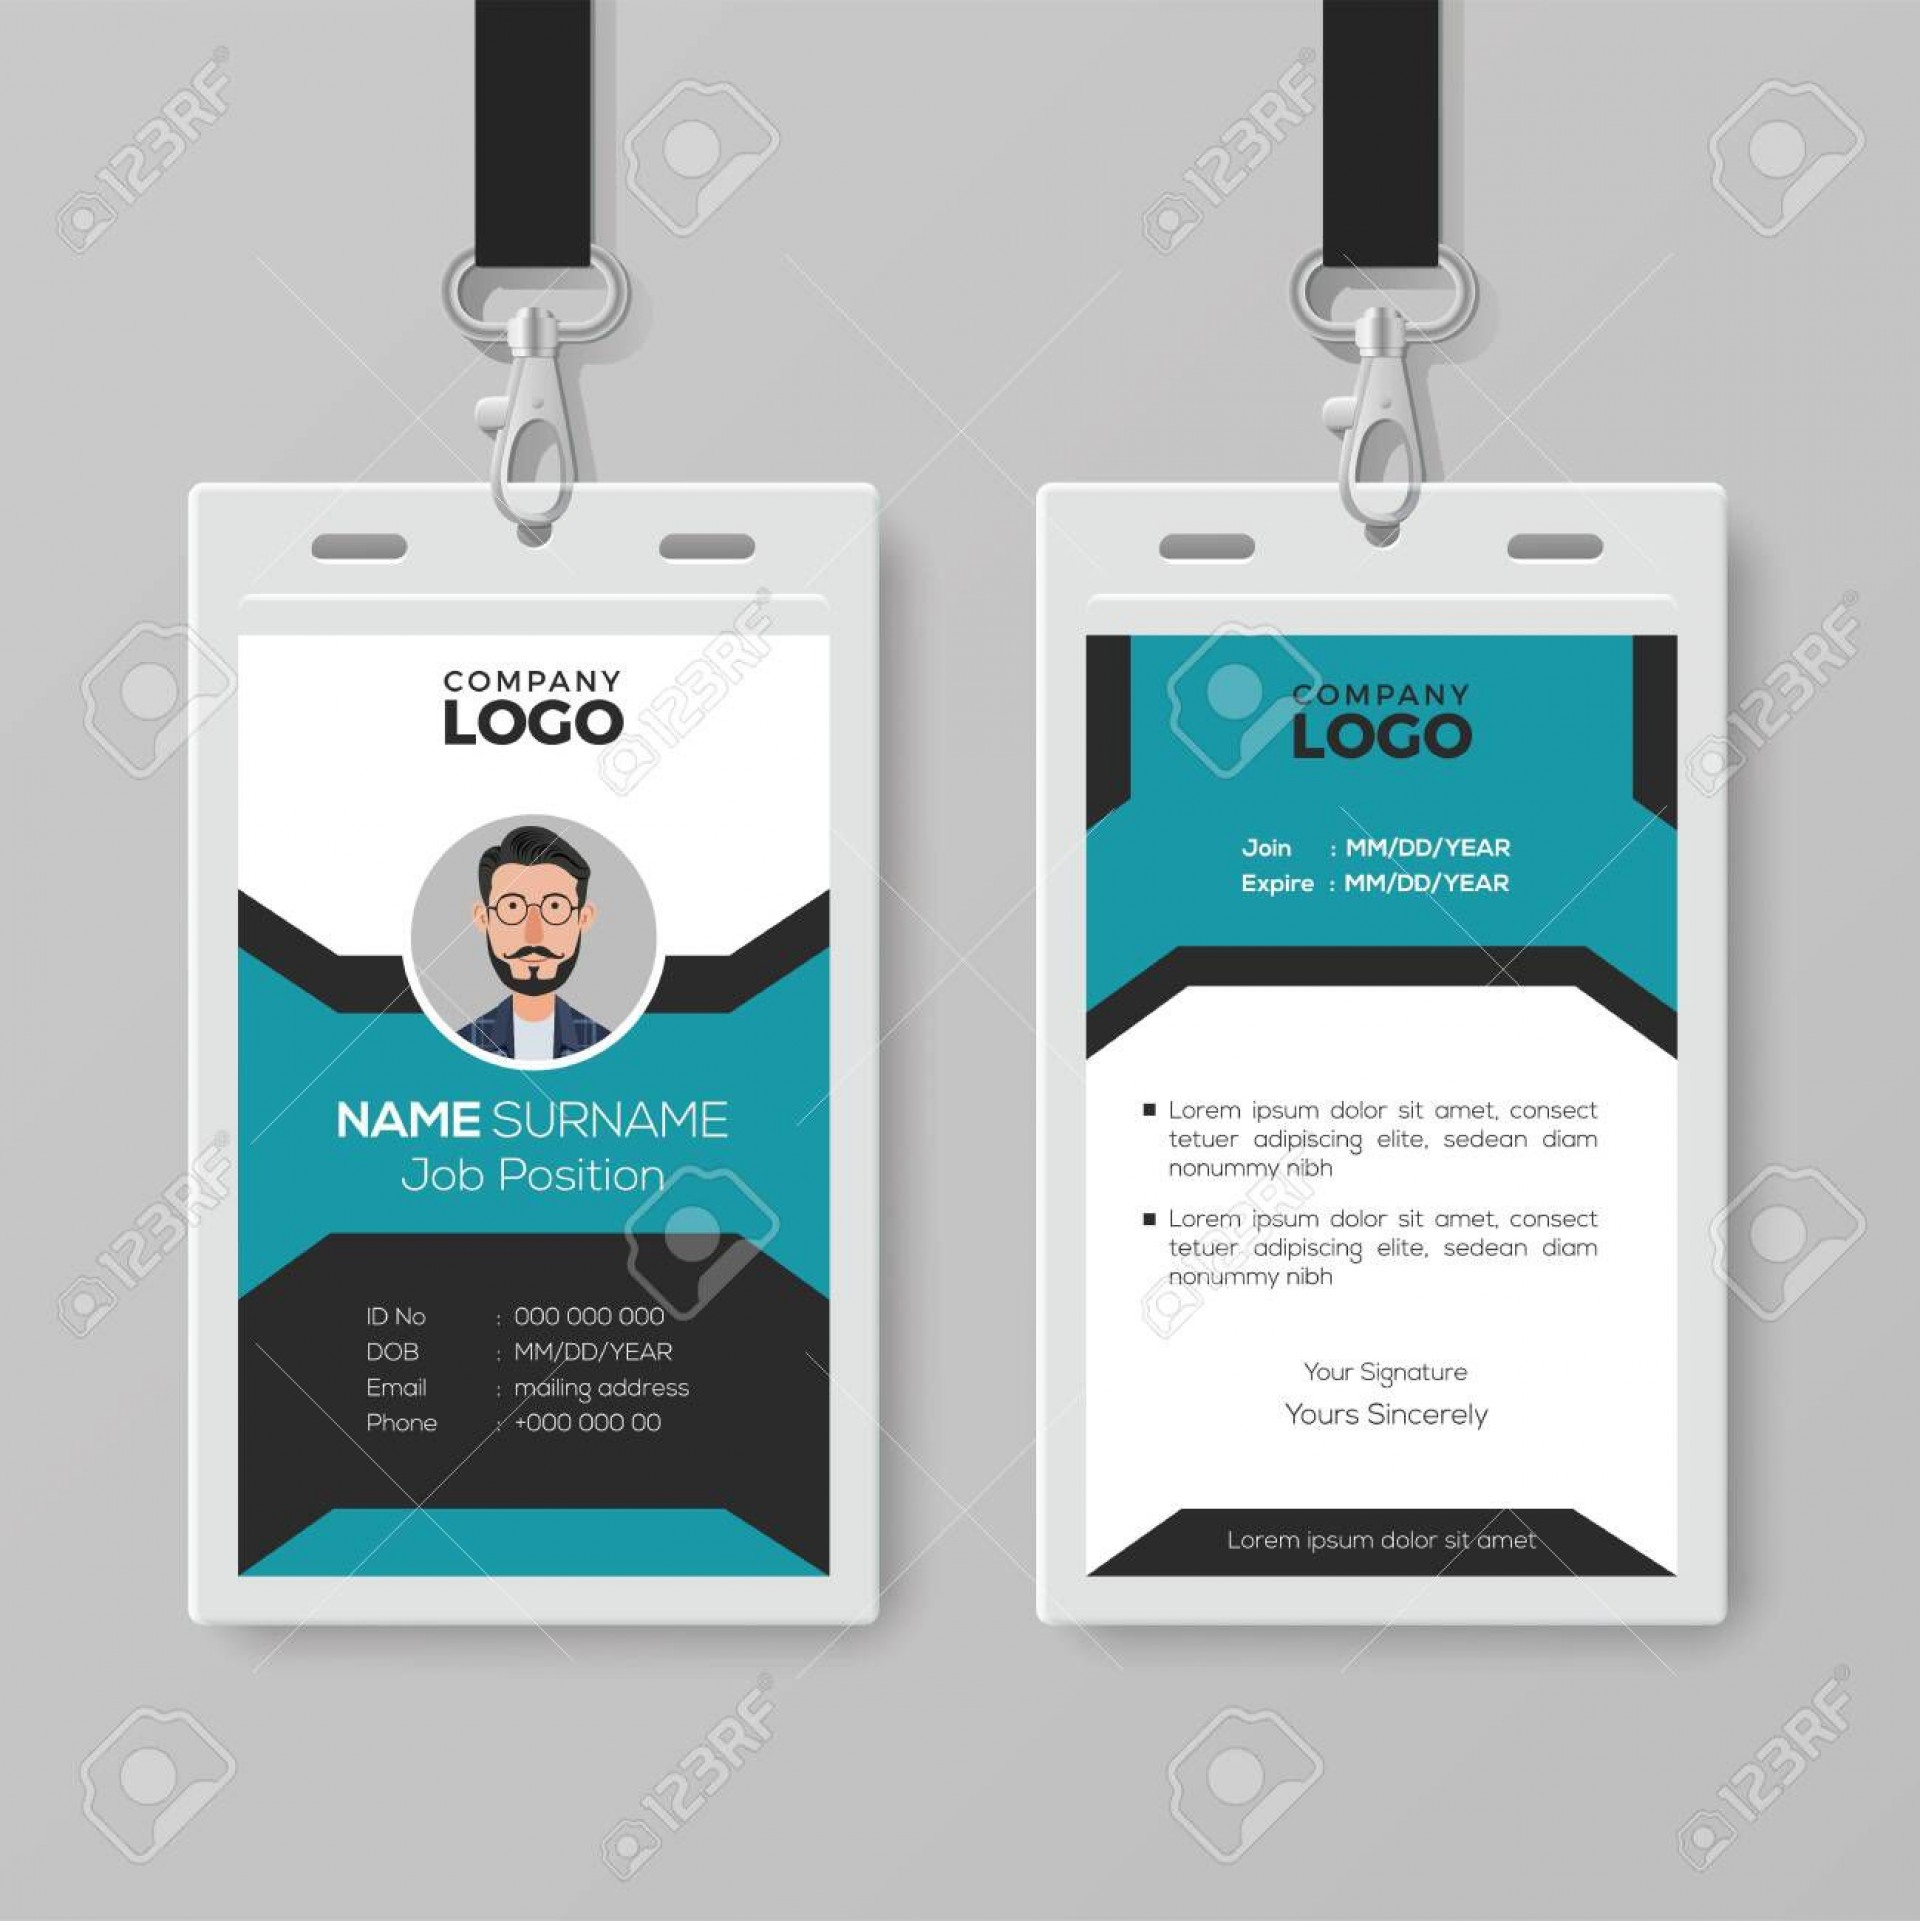 003 Staggering Employee Id Card Template Example  Free Download Psd Word1920